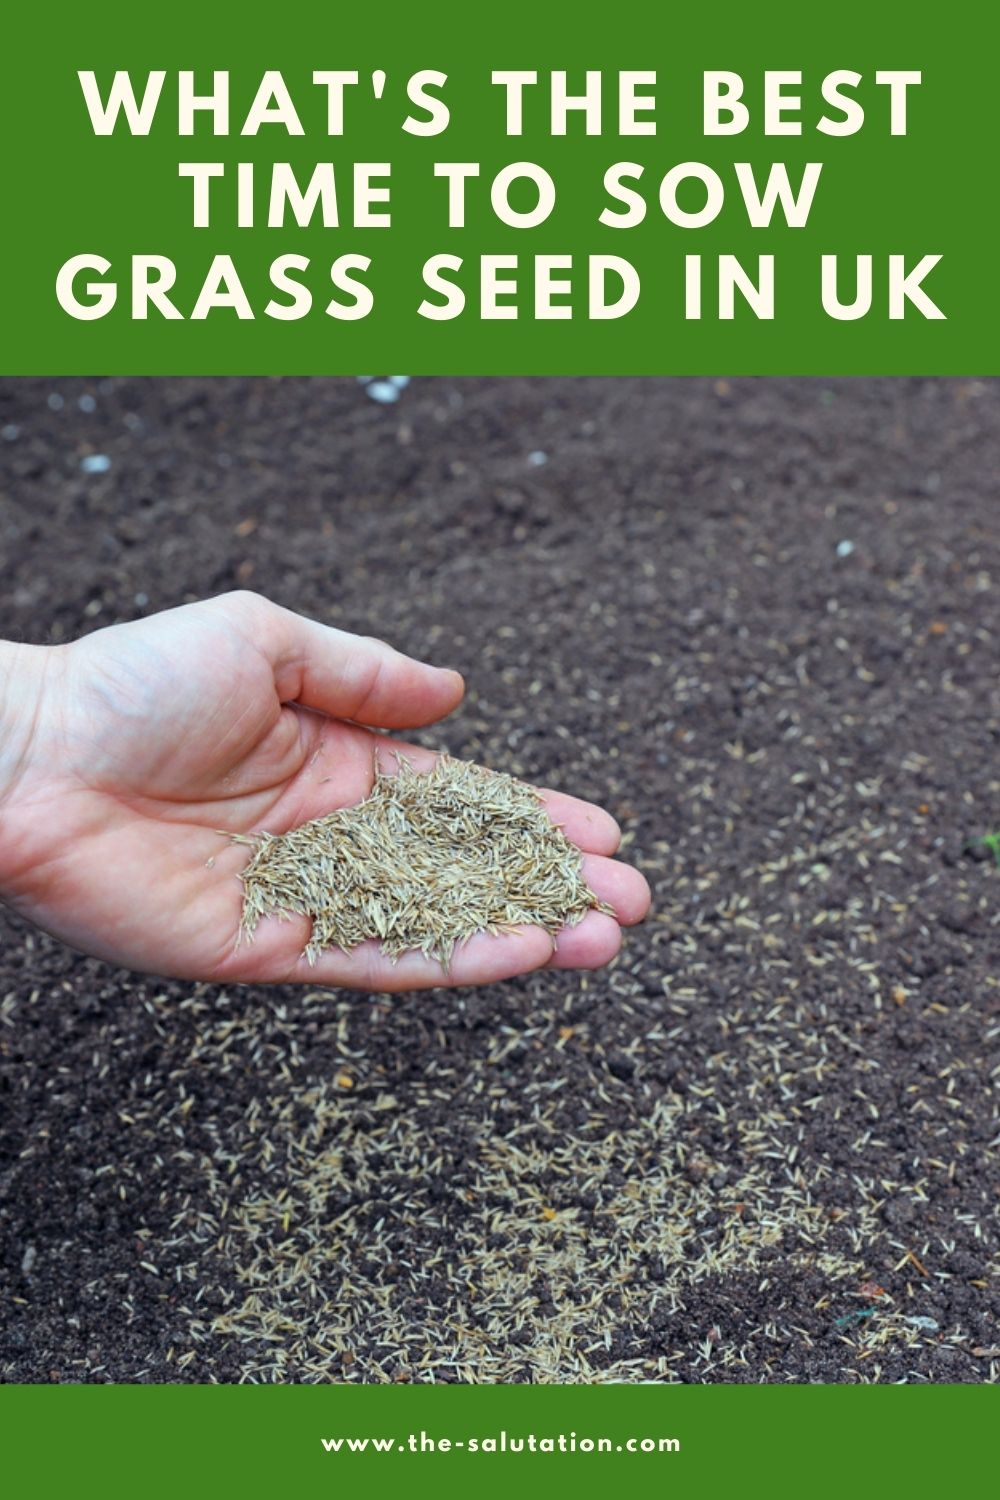 What's the Best Time to Sow Grass Seed in UK 1